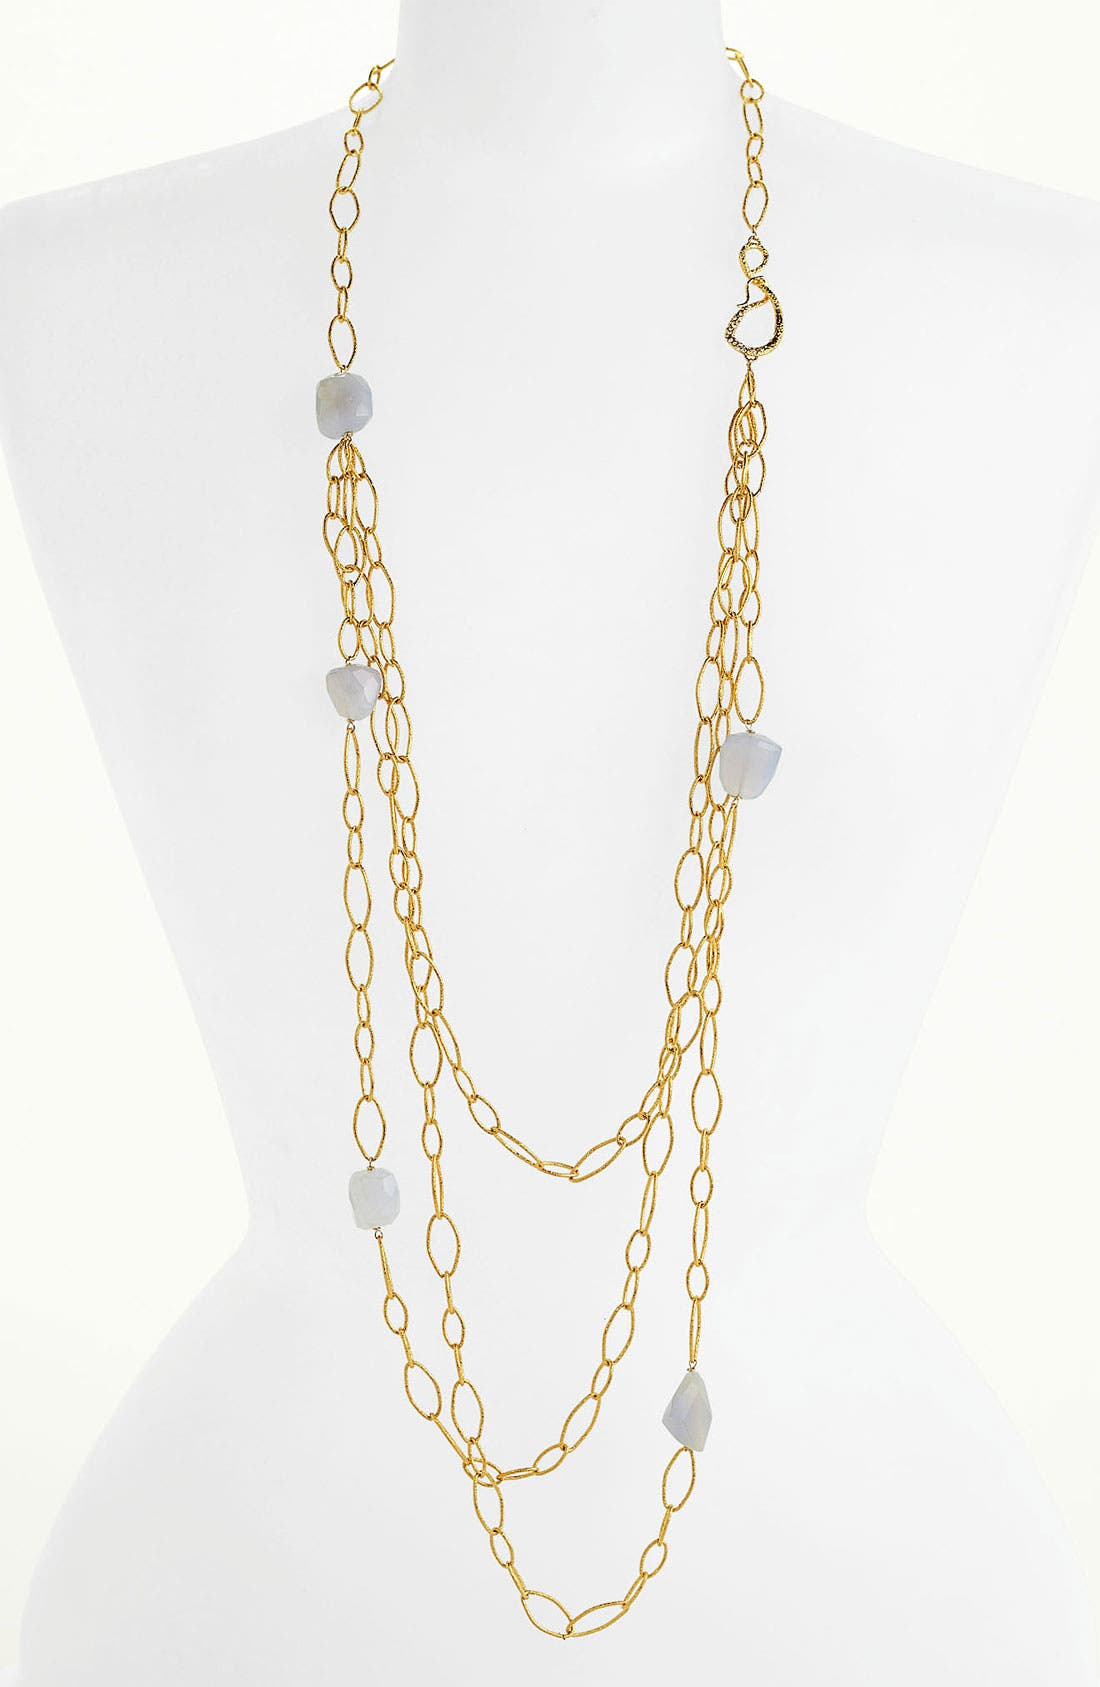 Main Image - Alexis Bittar 'Elements - Siyabona' Long Link Necklace